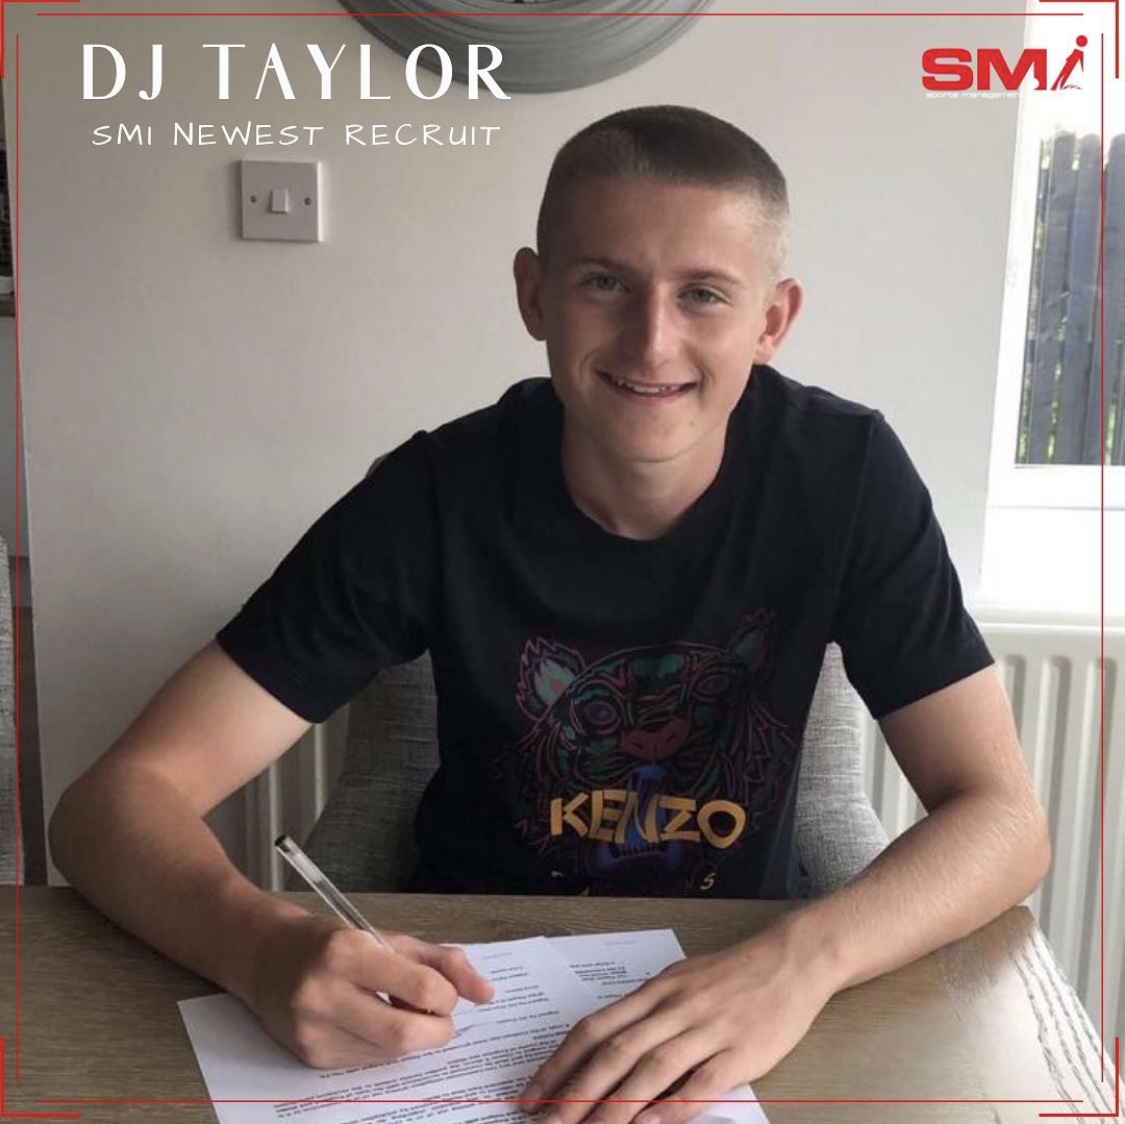 Welcome to SMI DJ Taylor